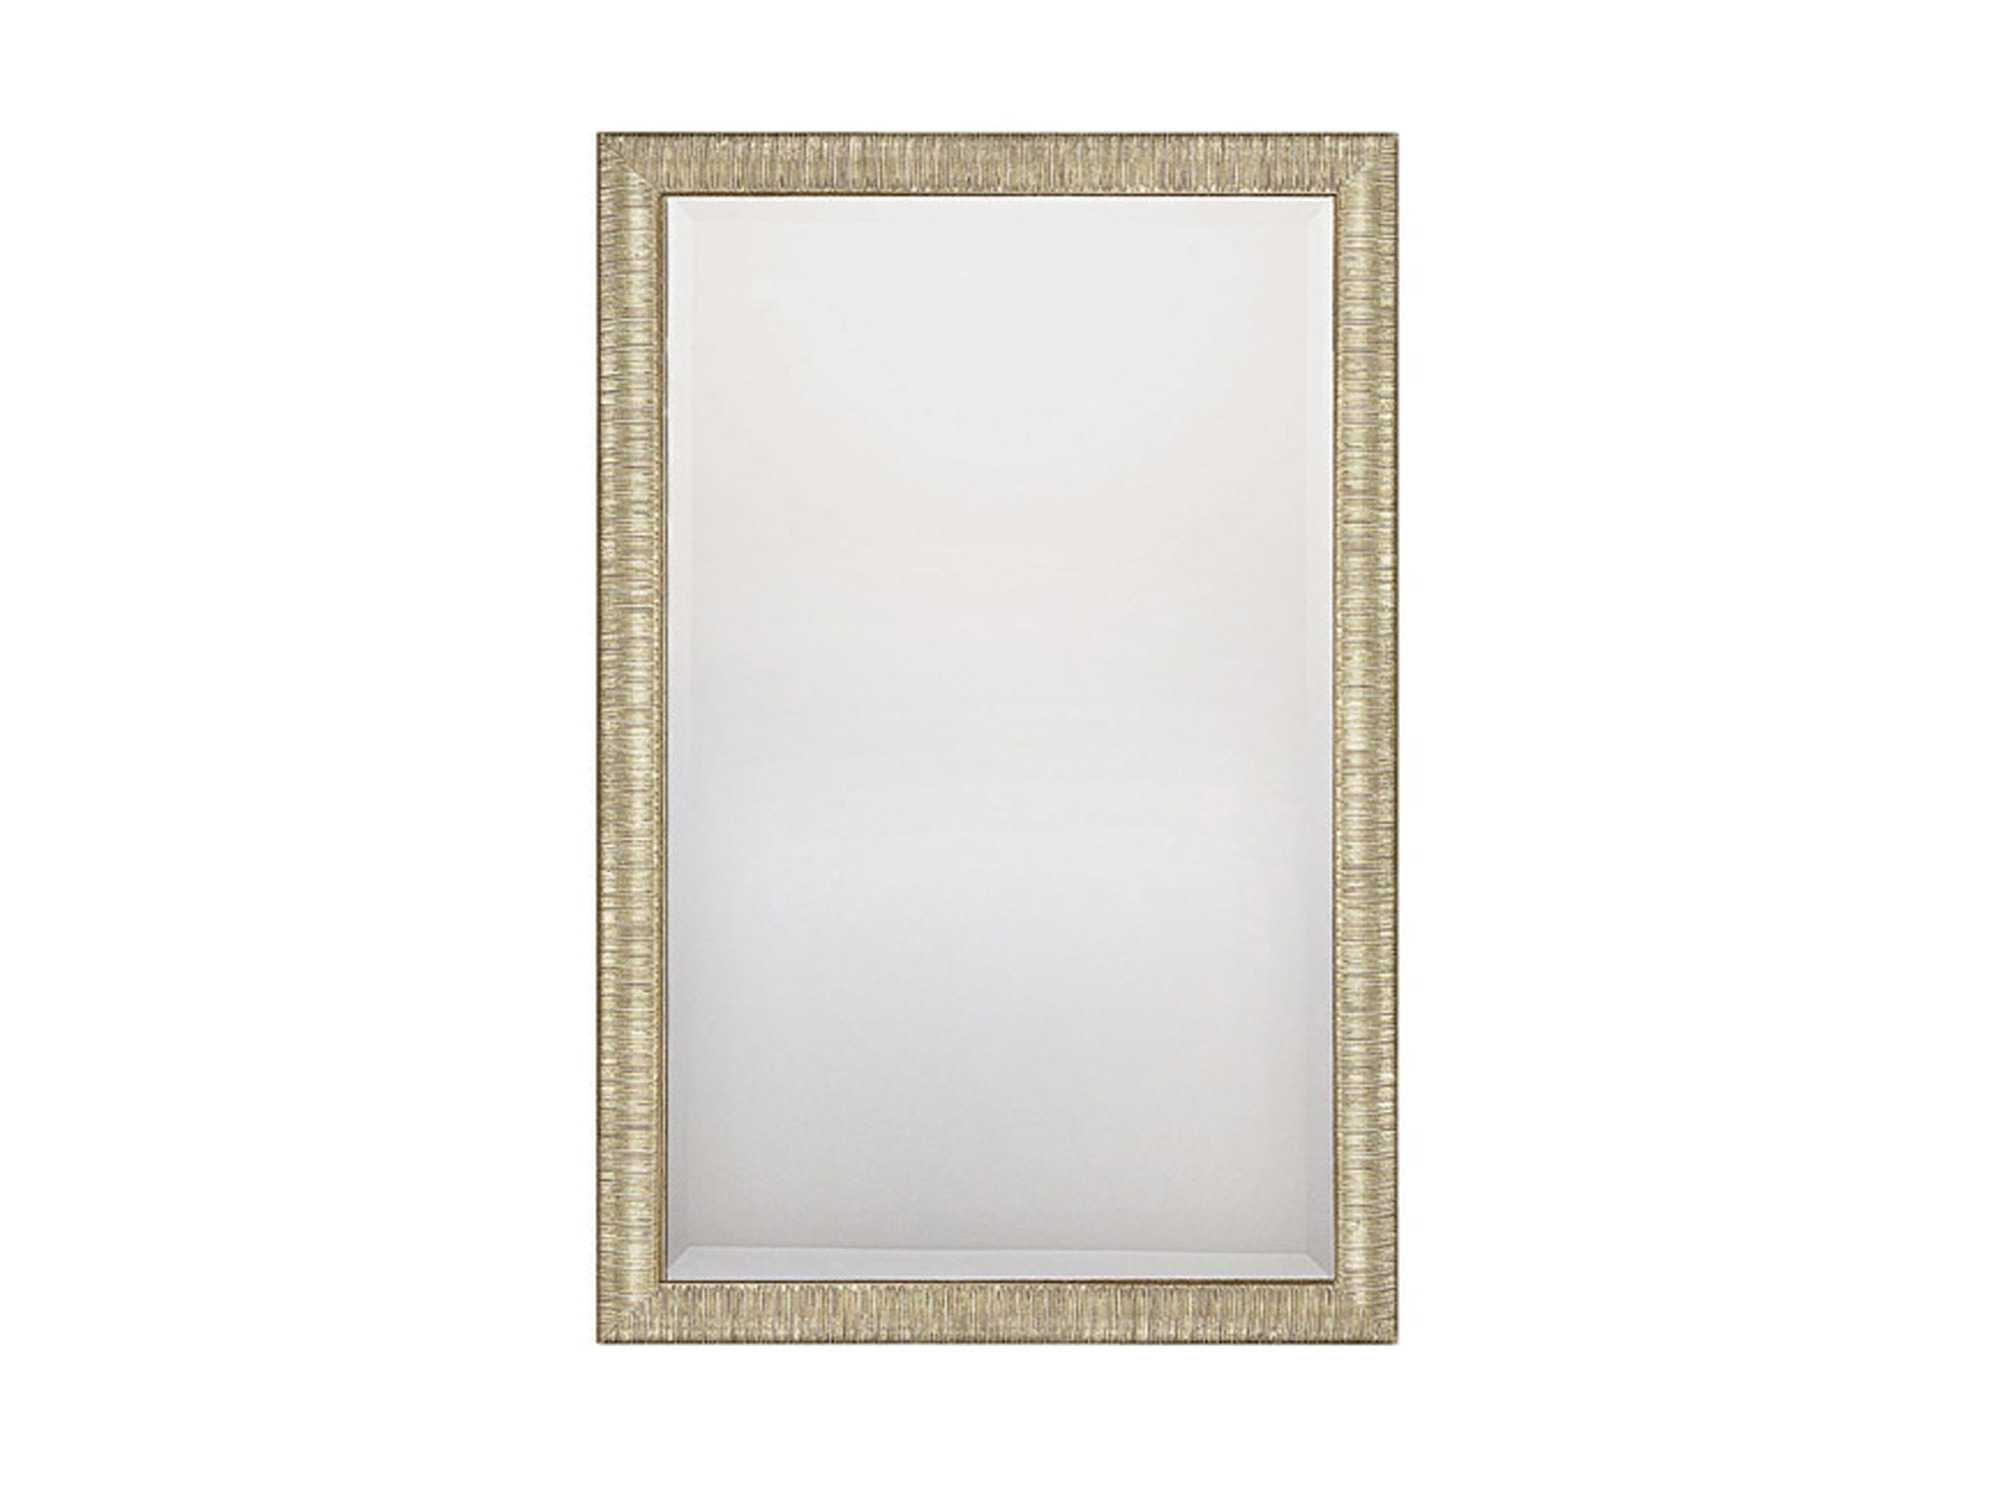 Fashionable Capital Lighting 24 X 36 Rectangular Beveled Striated Silver & Gold Wall  Mirror In 24 X 36 Wall Mirrors (View 11 of 20)